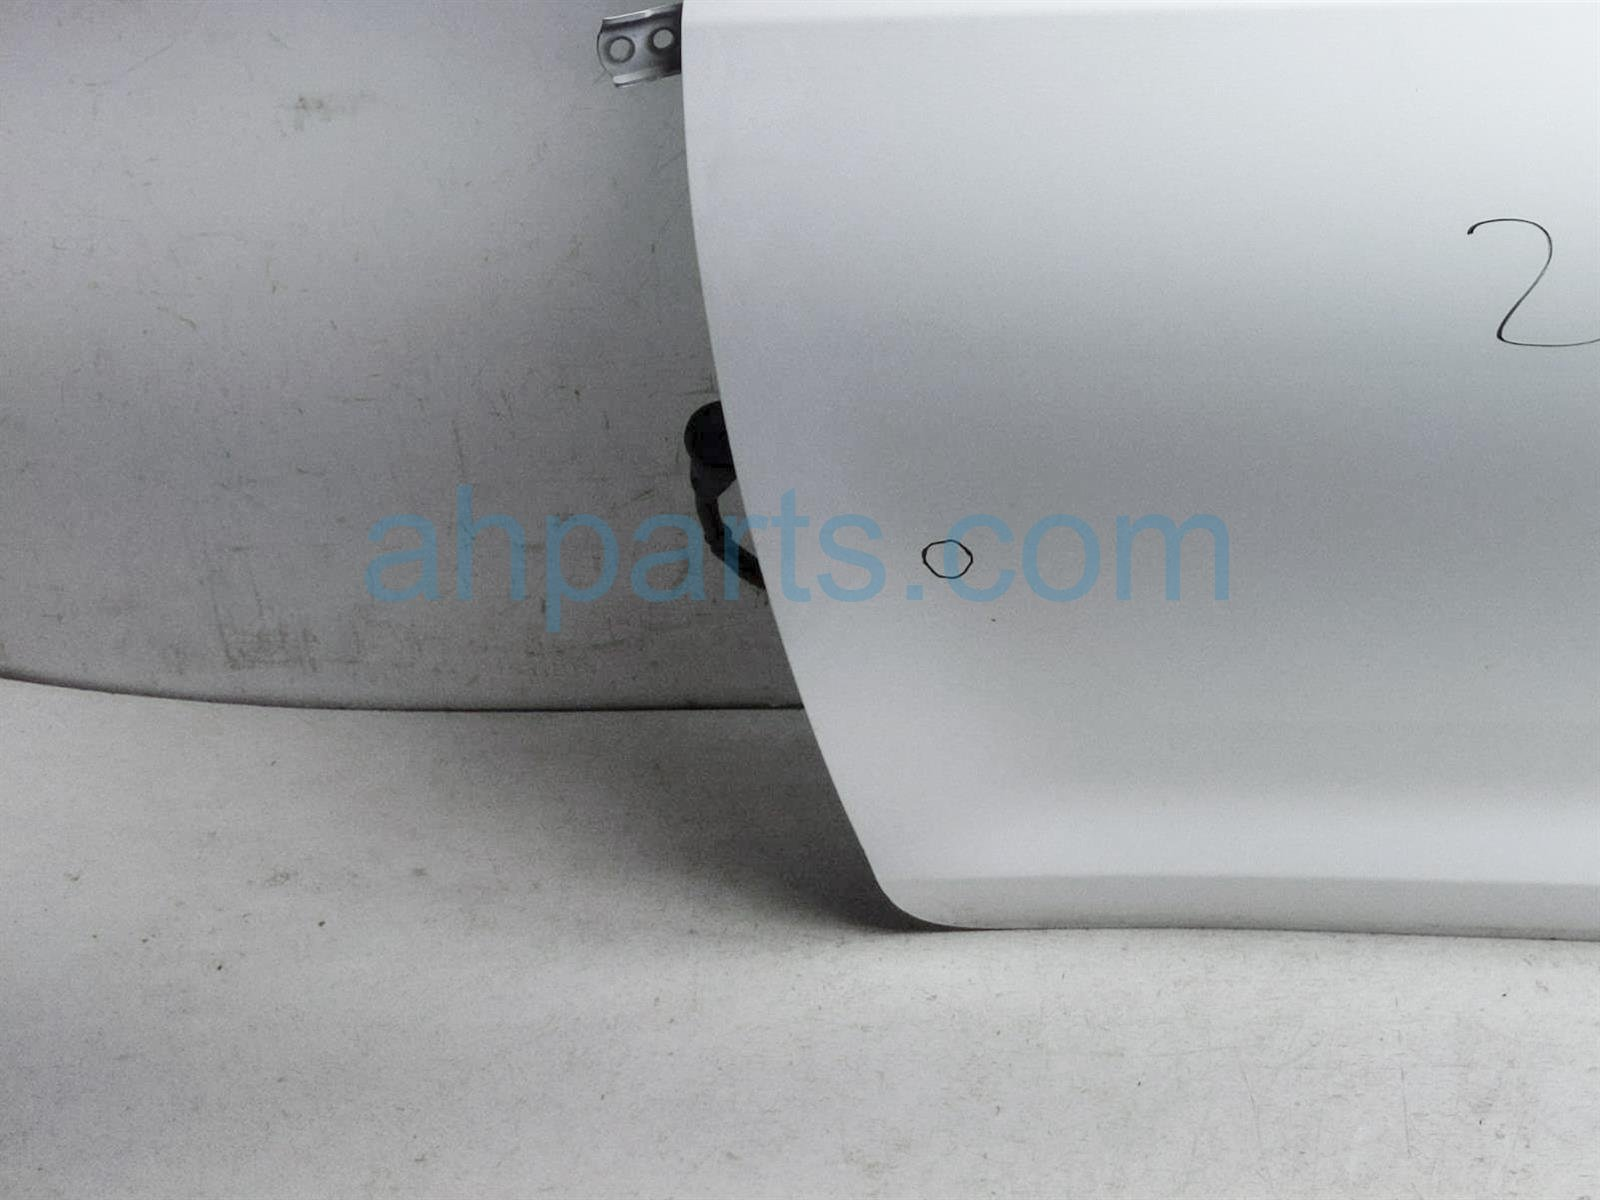 2013 Toyota Sienna Front Driver Door   White   No Mirror/trim 67002 08061 Replacement